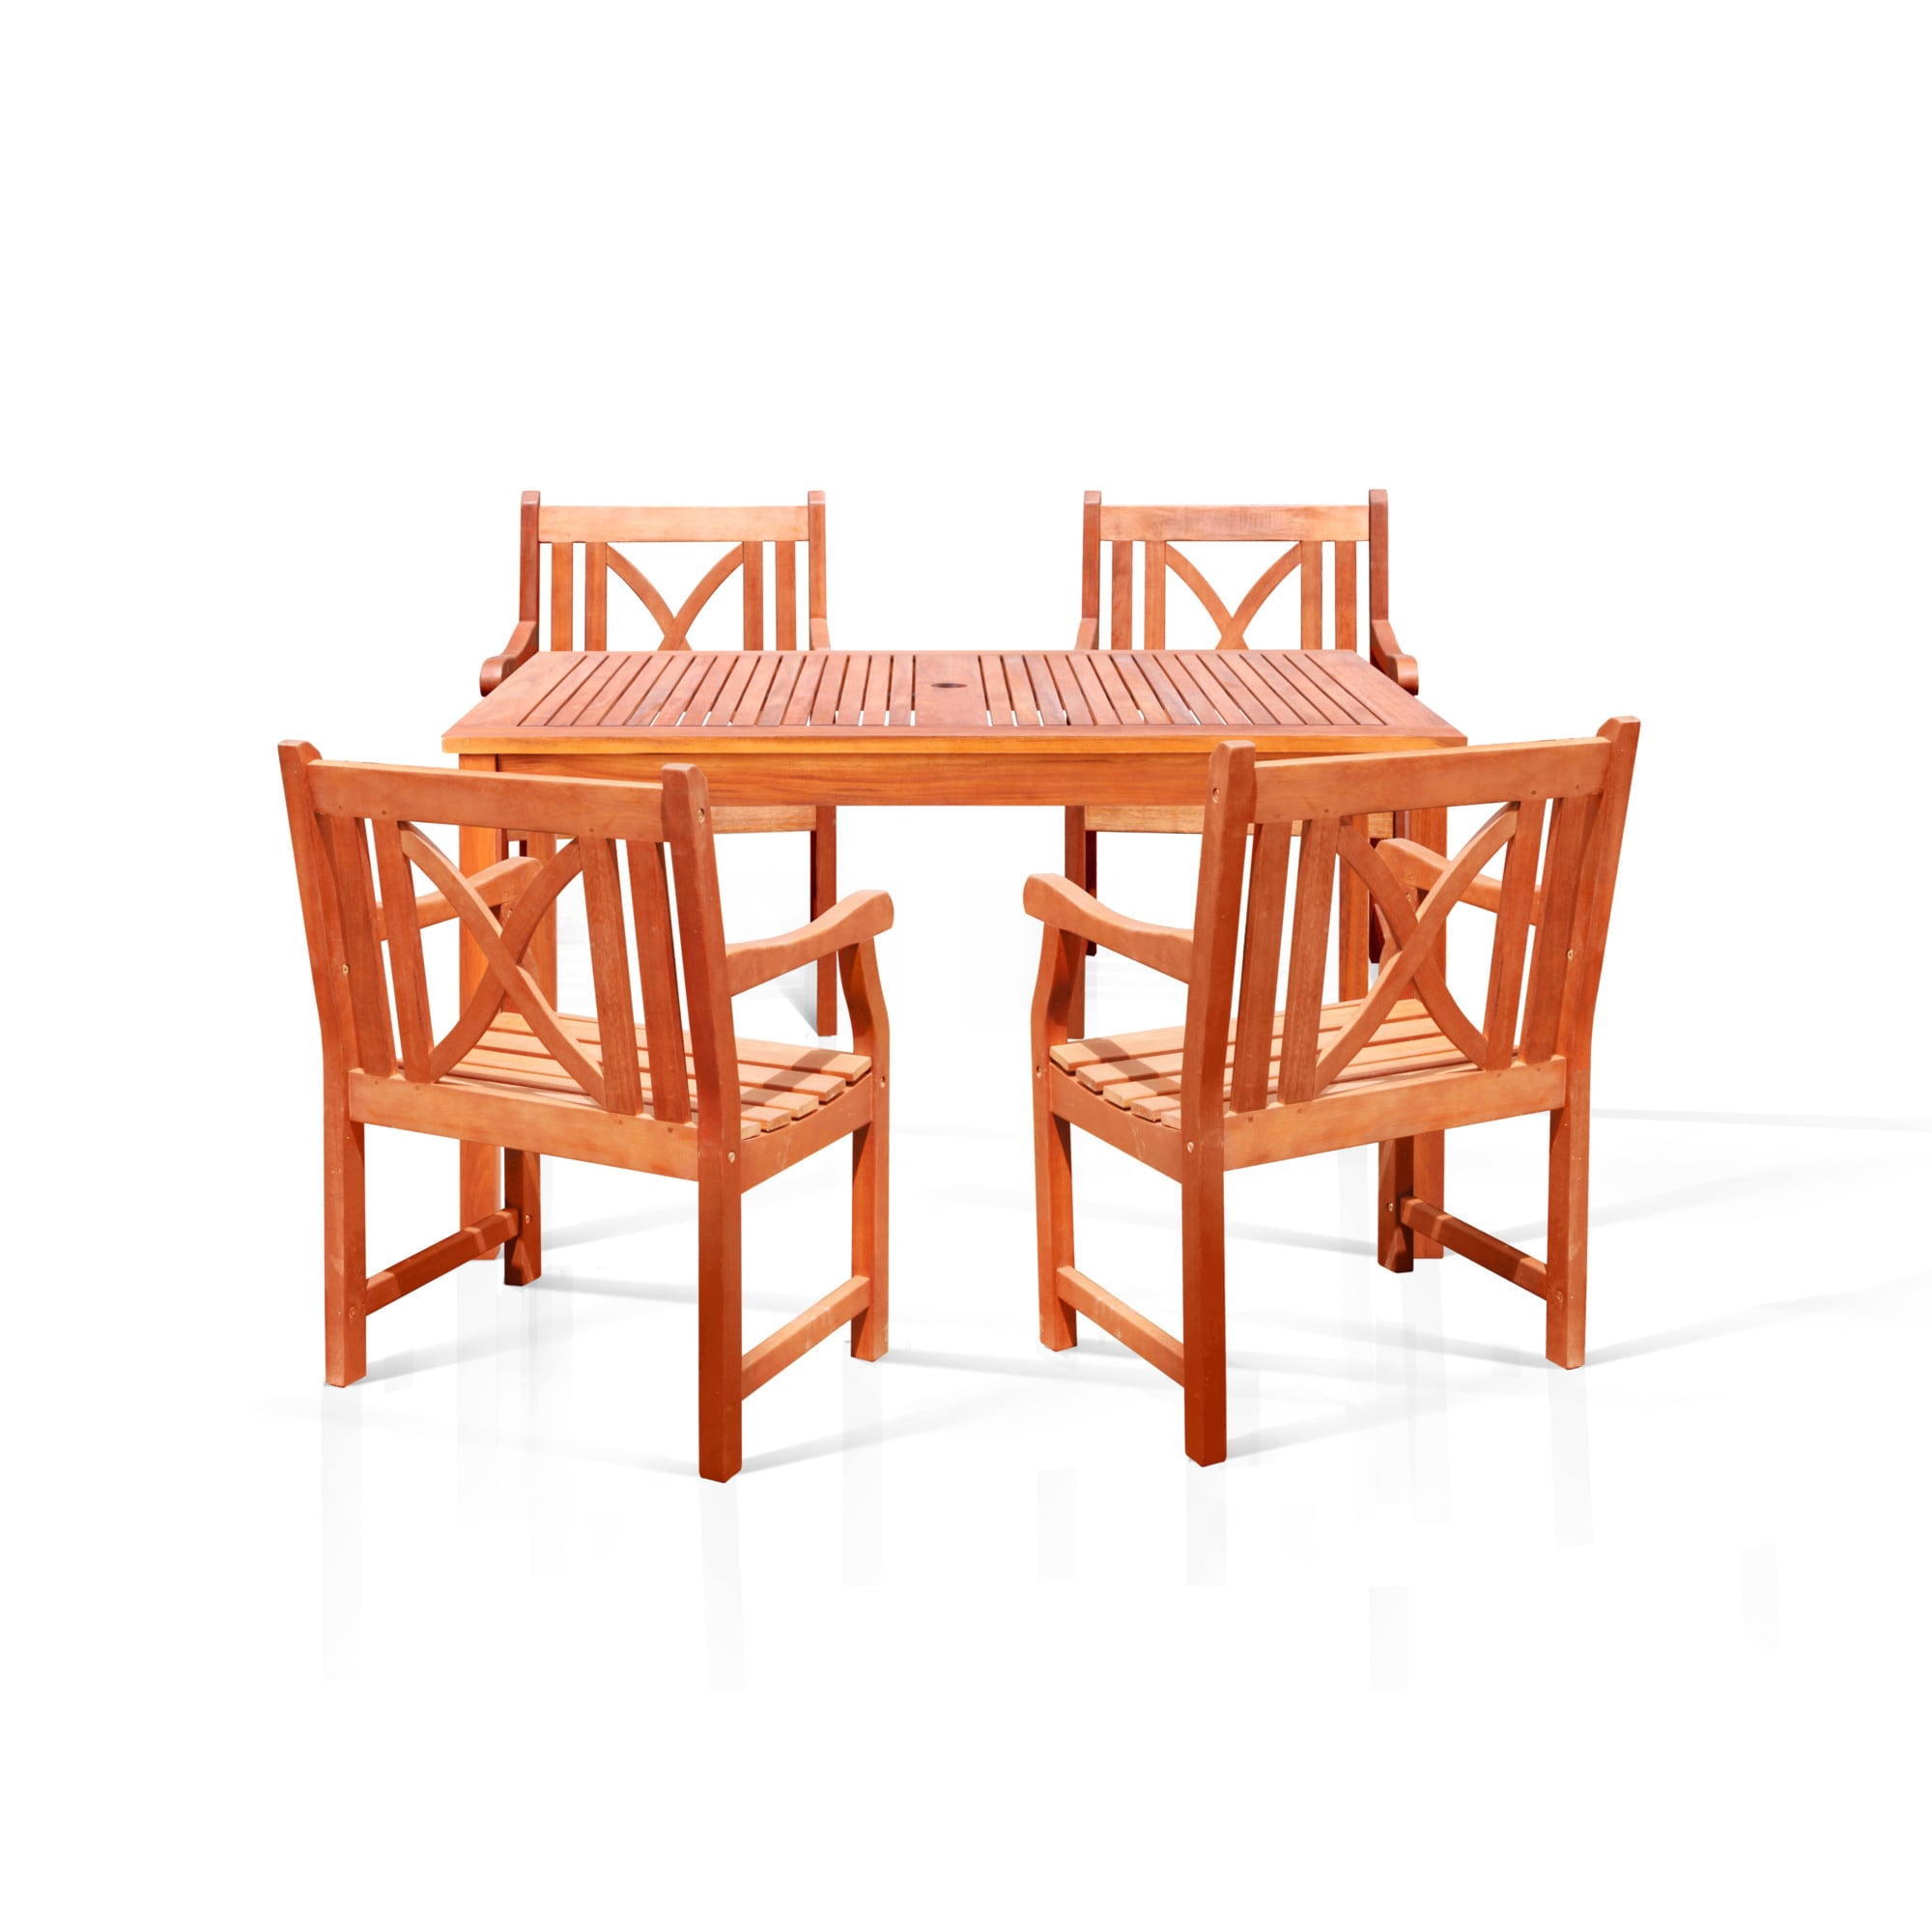 Vifah Bonsi Dining Set with Rectangulate Table and 4 Armchairs at Sears.com